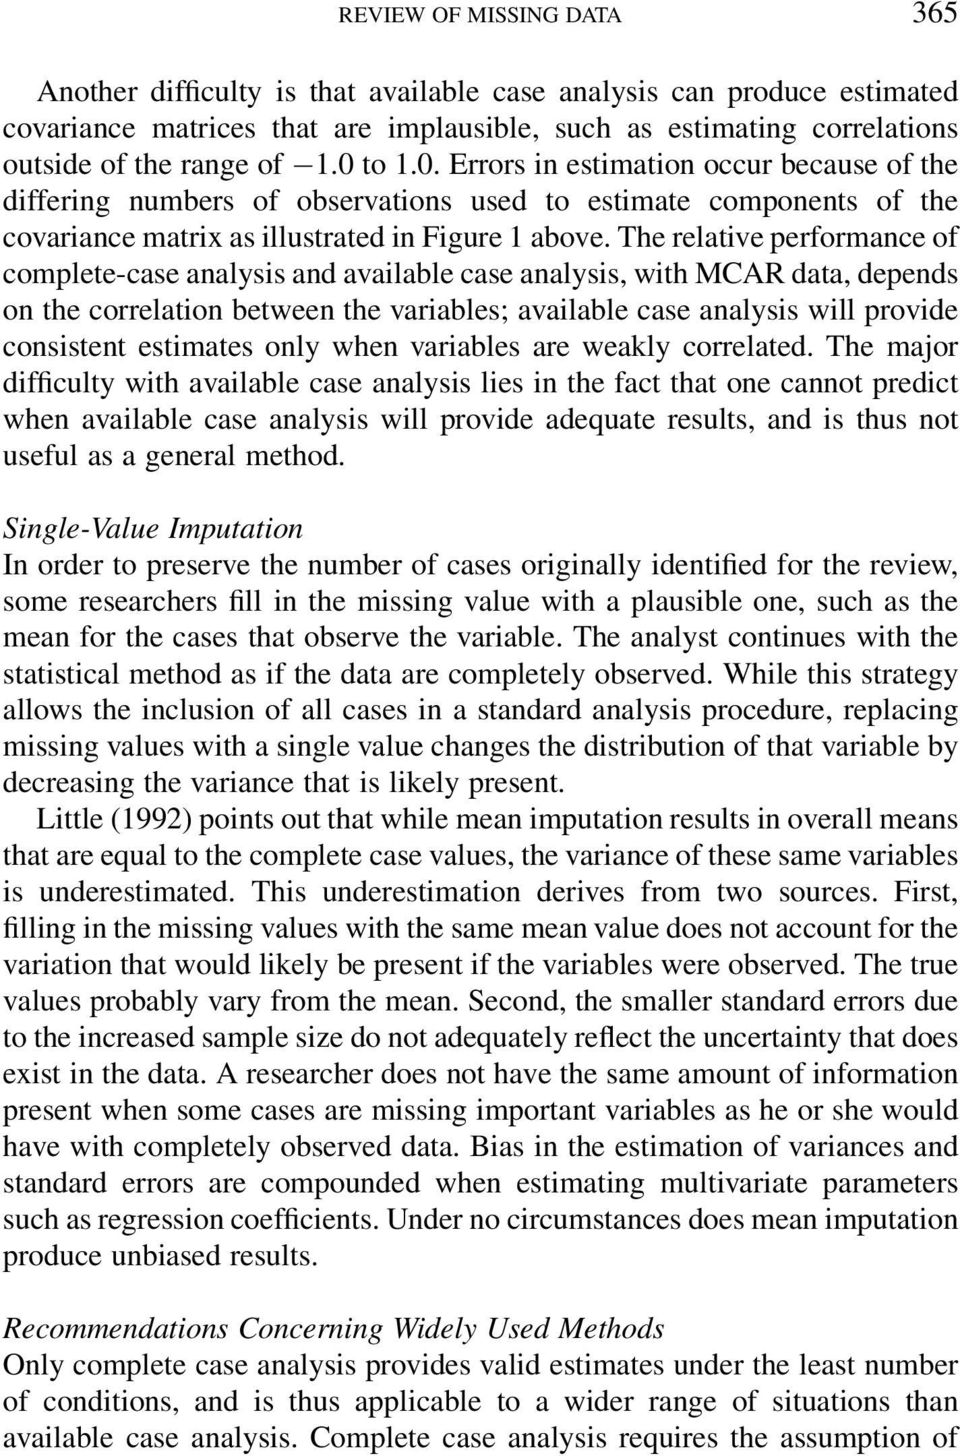 The relative performance of complete-case analysis and available case analysis, with MCAR data, depends on the correlation between the variables; available case analysis will provide consistent